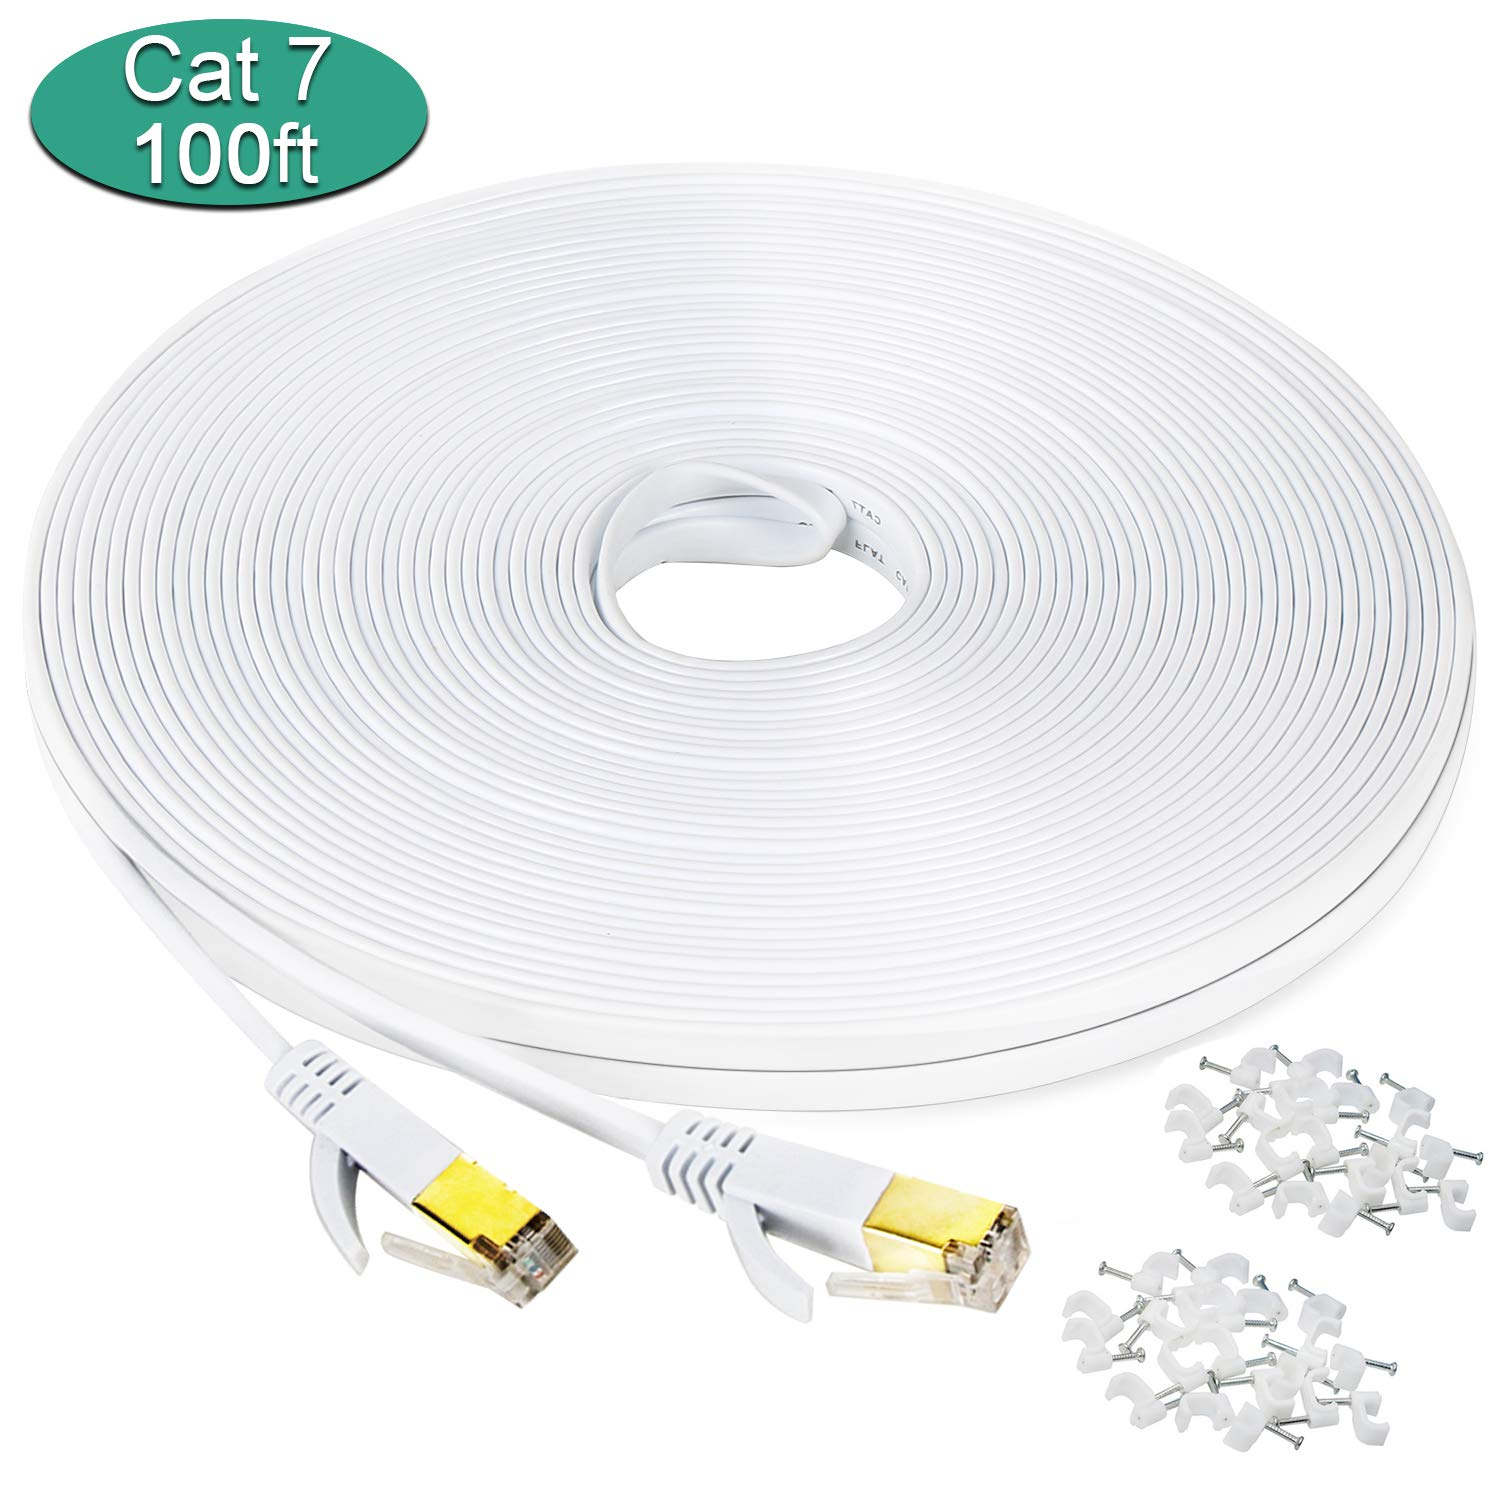 Cat 7 Ethernet Cable 100 ft, Long Outdoor Flat Internet Network Patch Cord with Clips,Faster Than Cat6 Cat6a Cat5e with Gold Plated High Speed RJ45 LAN Wire for Gaming,MAC,Desktop,ADSL,LAN-White by DEEGO